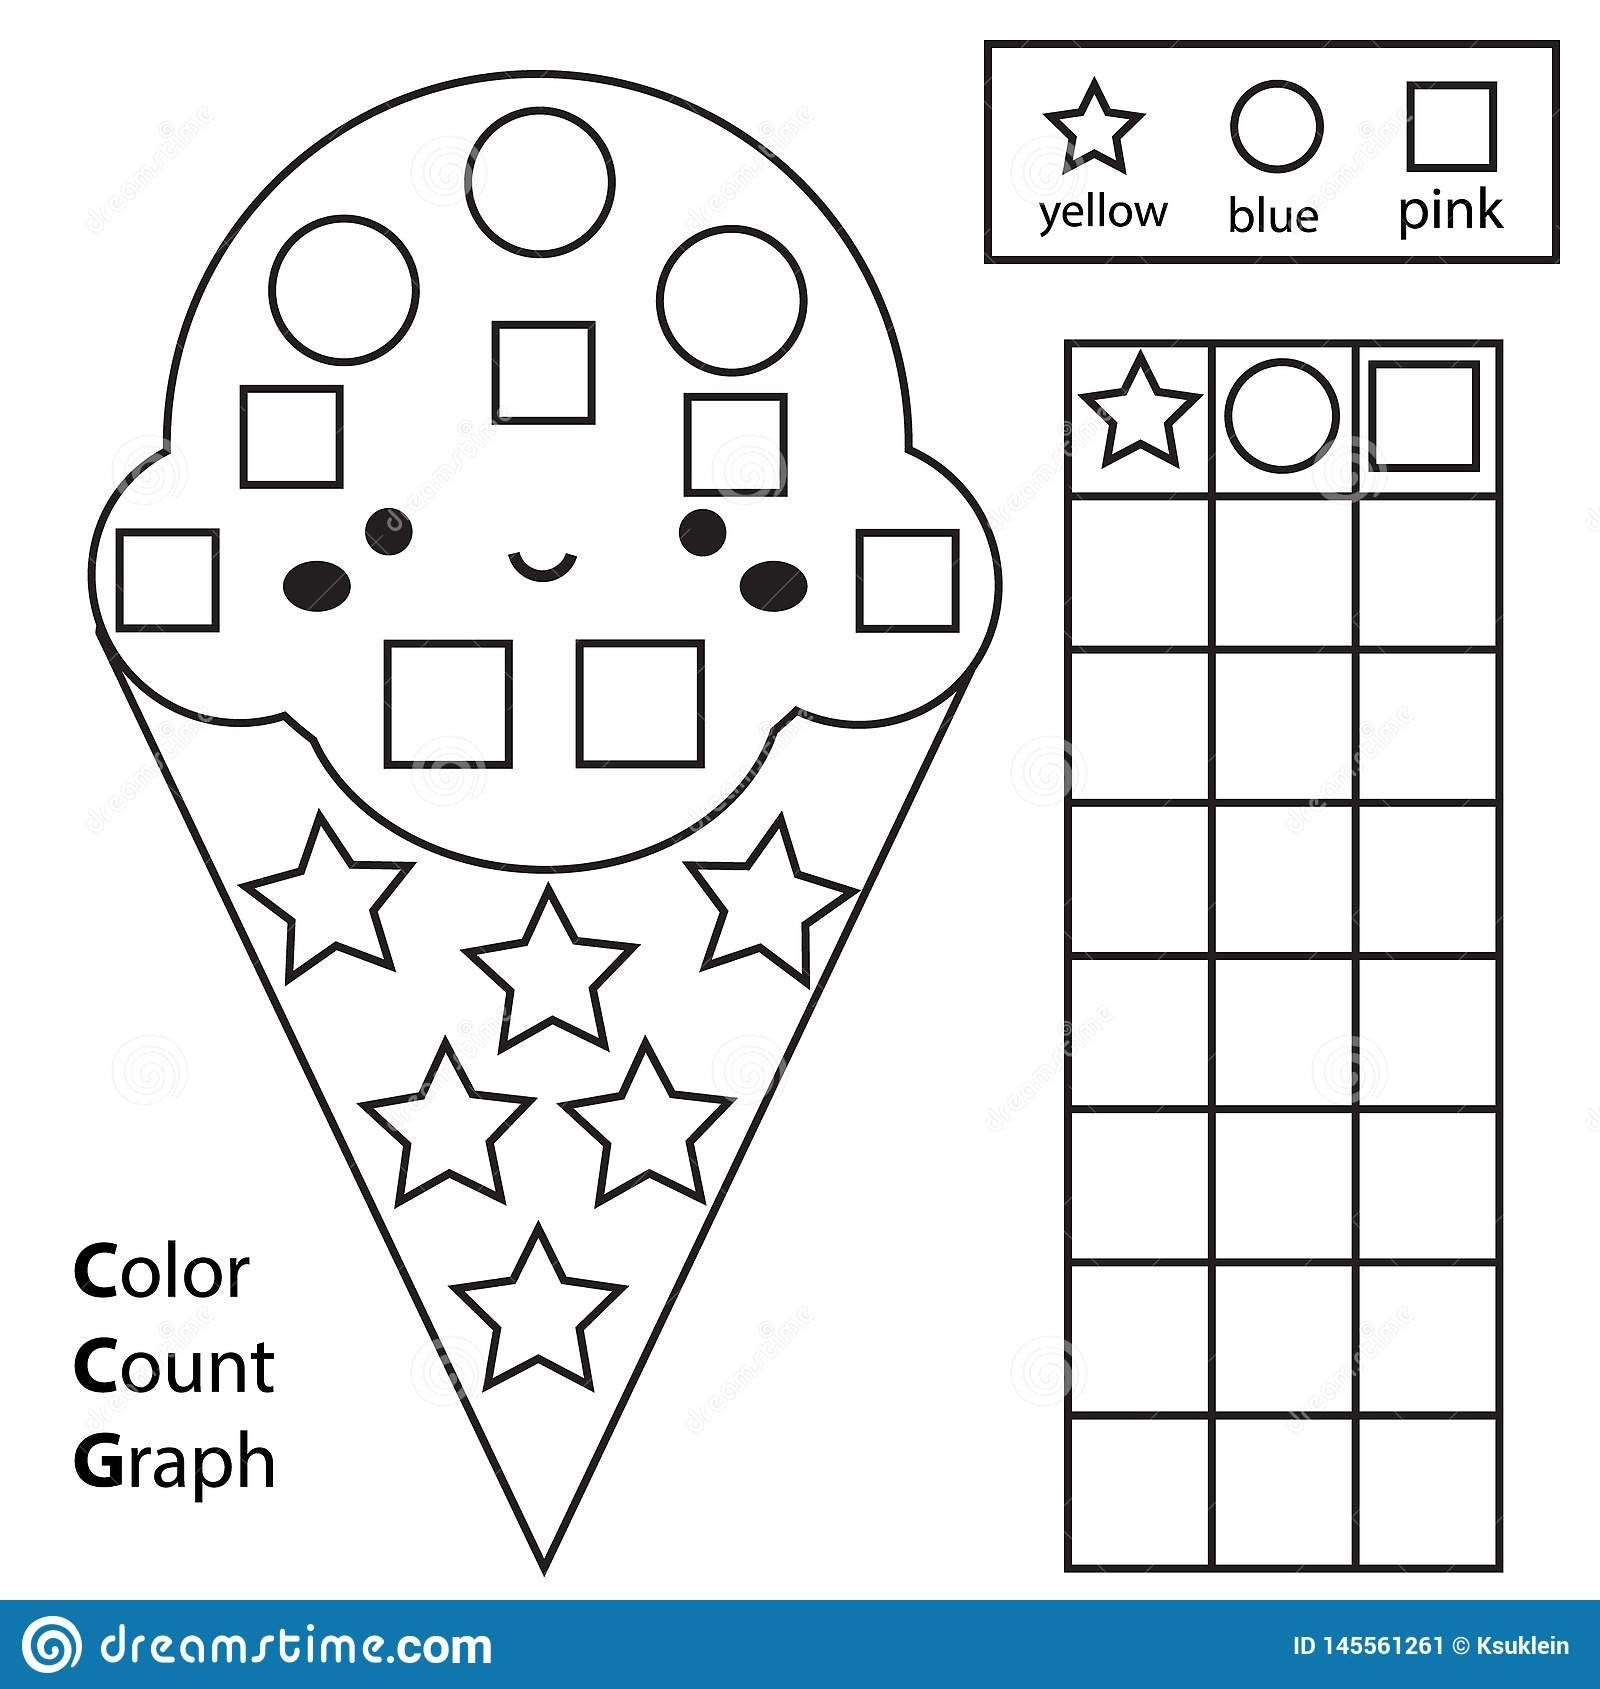 Social Skills Worksheets for Kindergarten Color Count and Graph Educational Children Game Ice